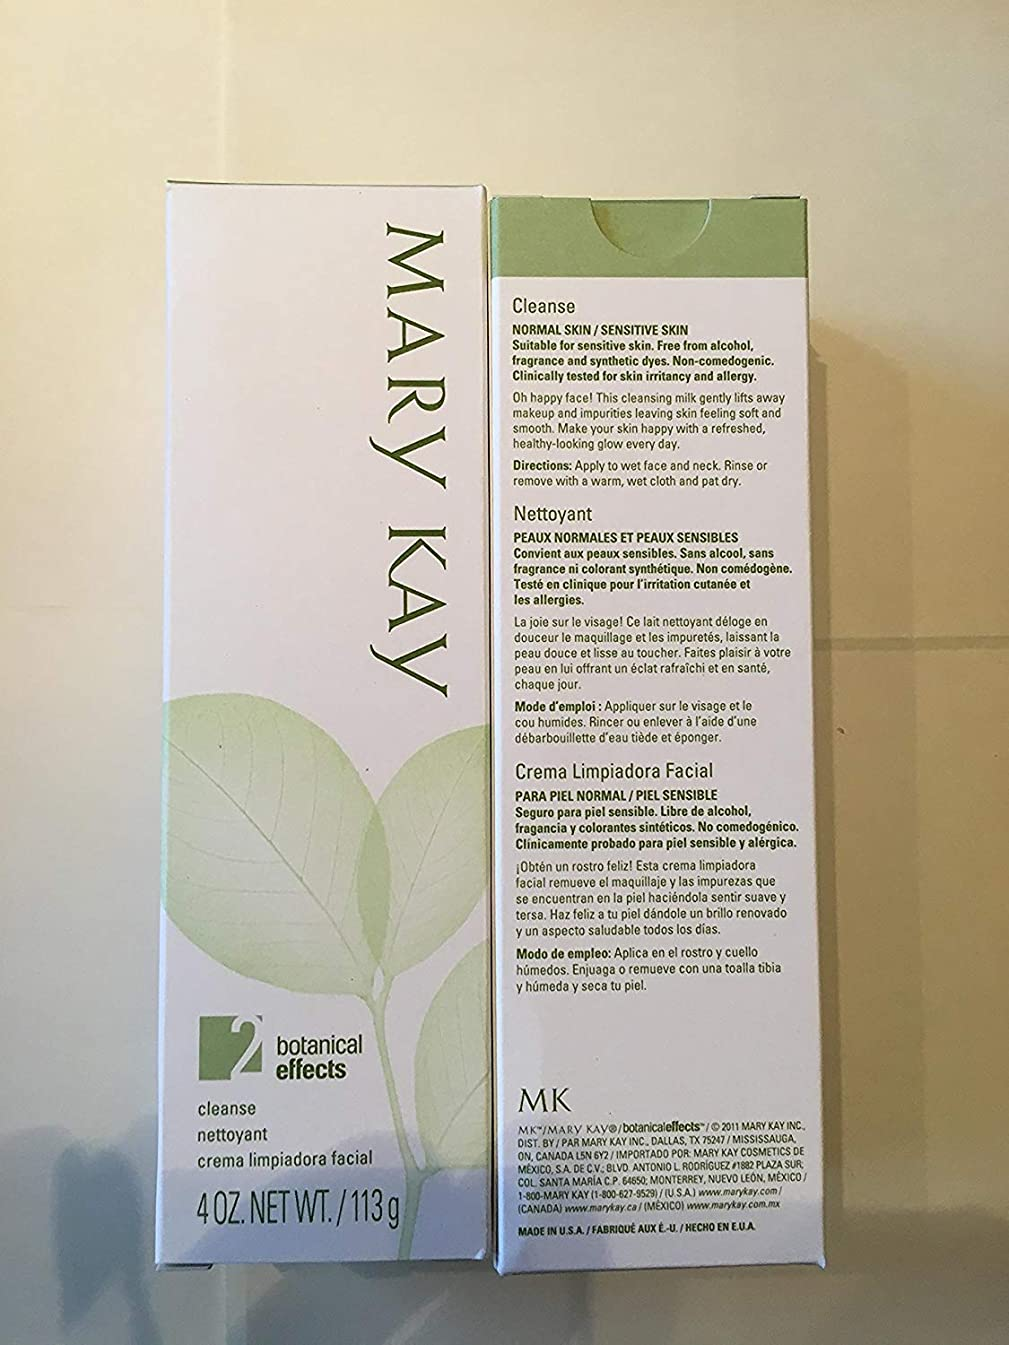 Mary Kay Botanical Effects Cleanse Formula 2 (Normal Skin)